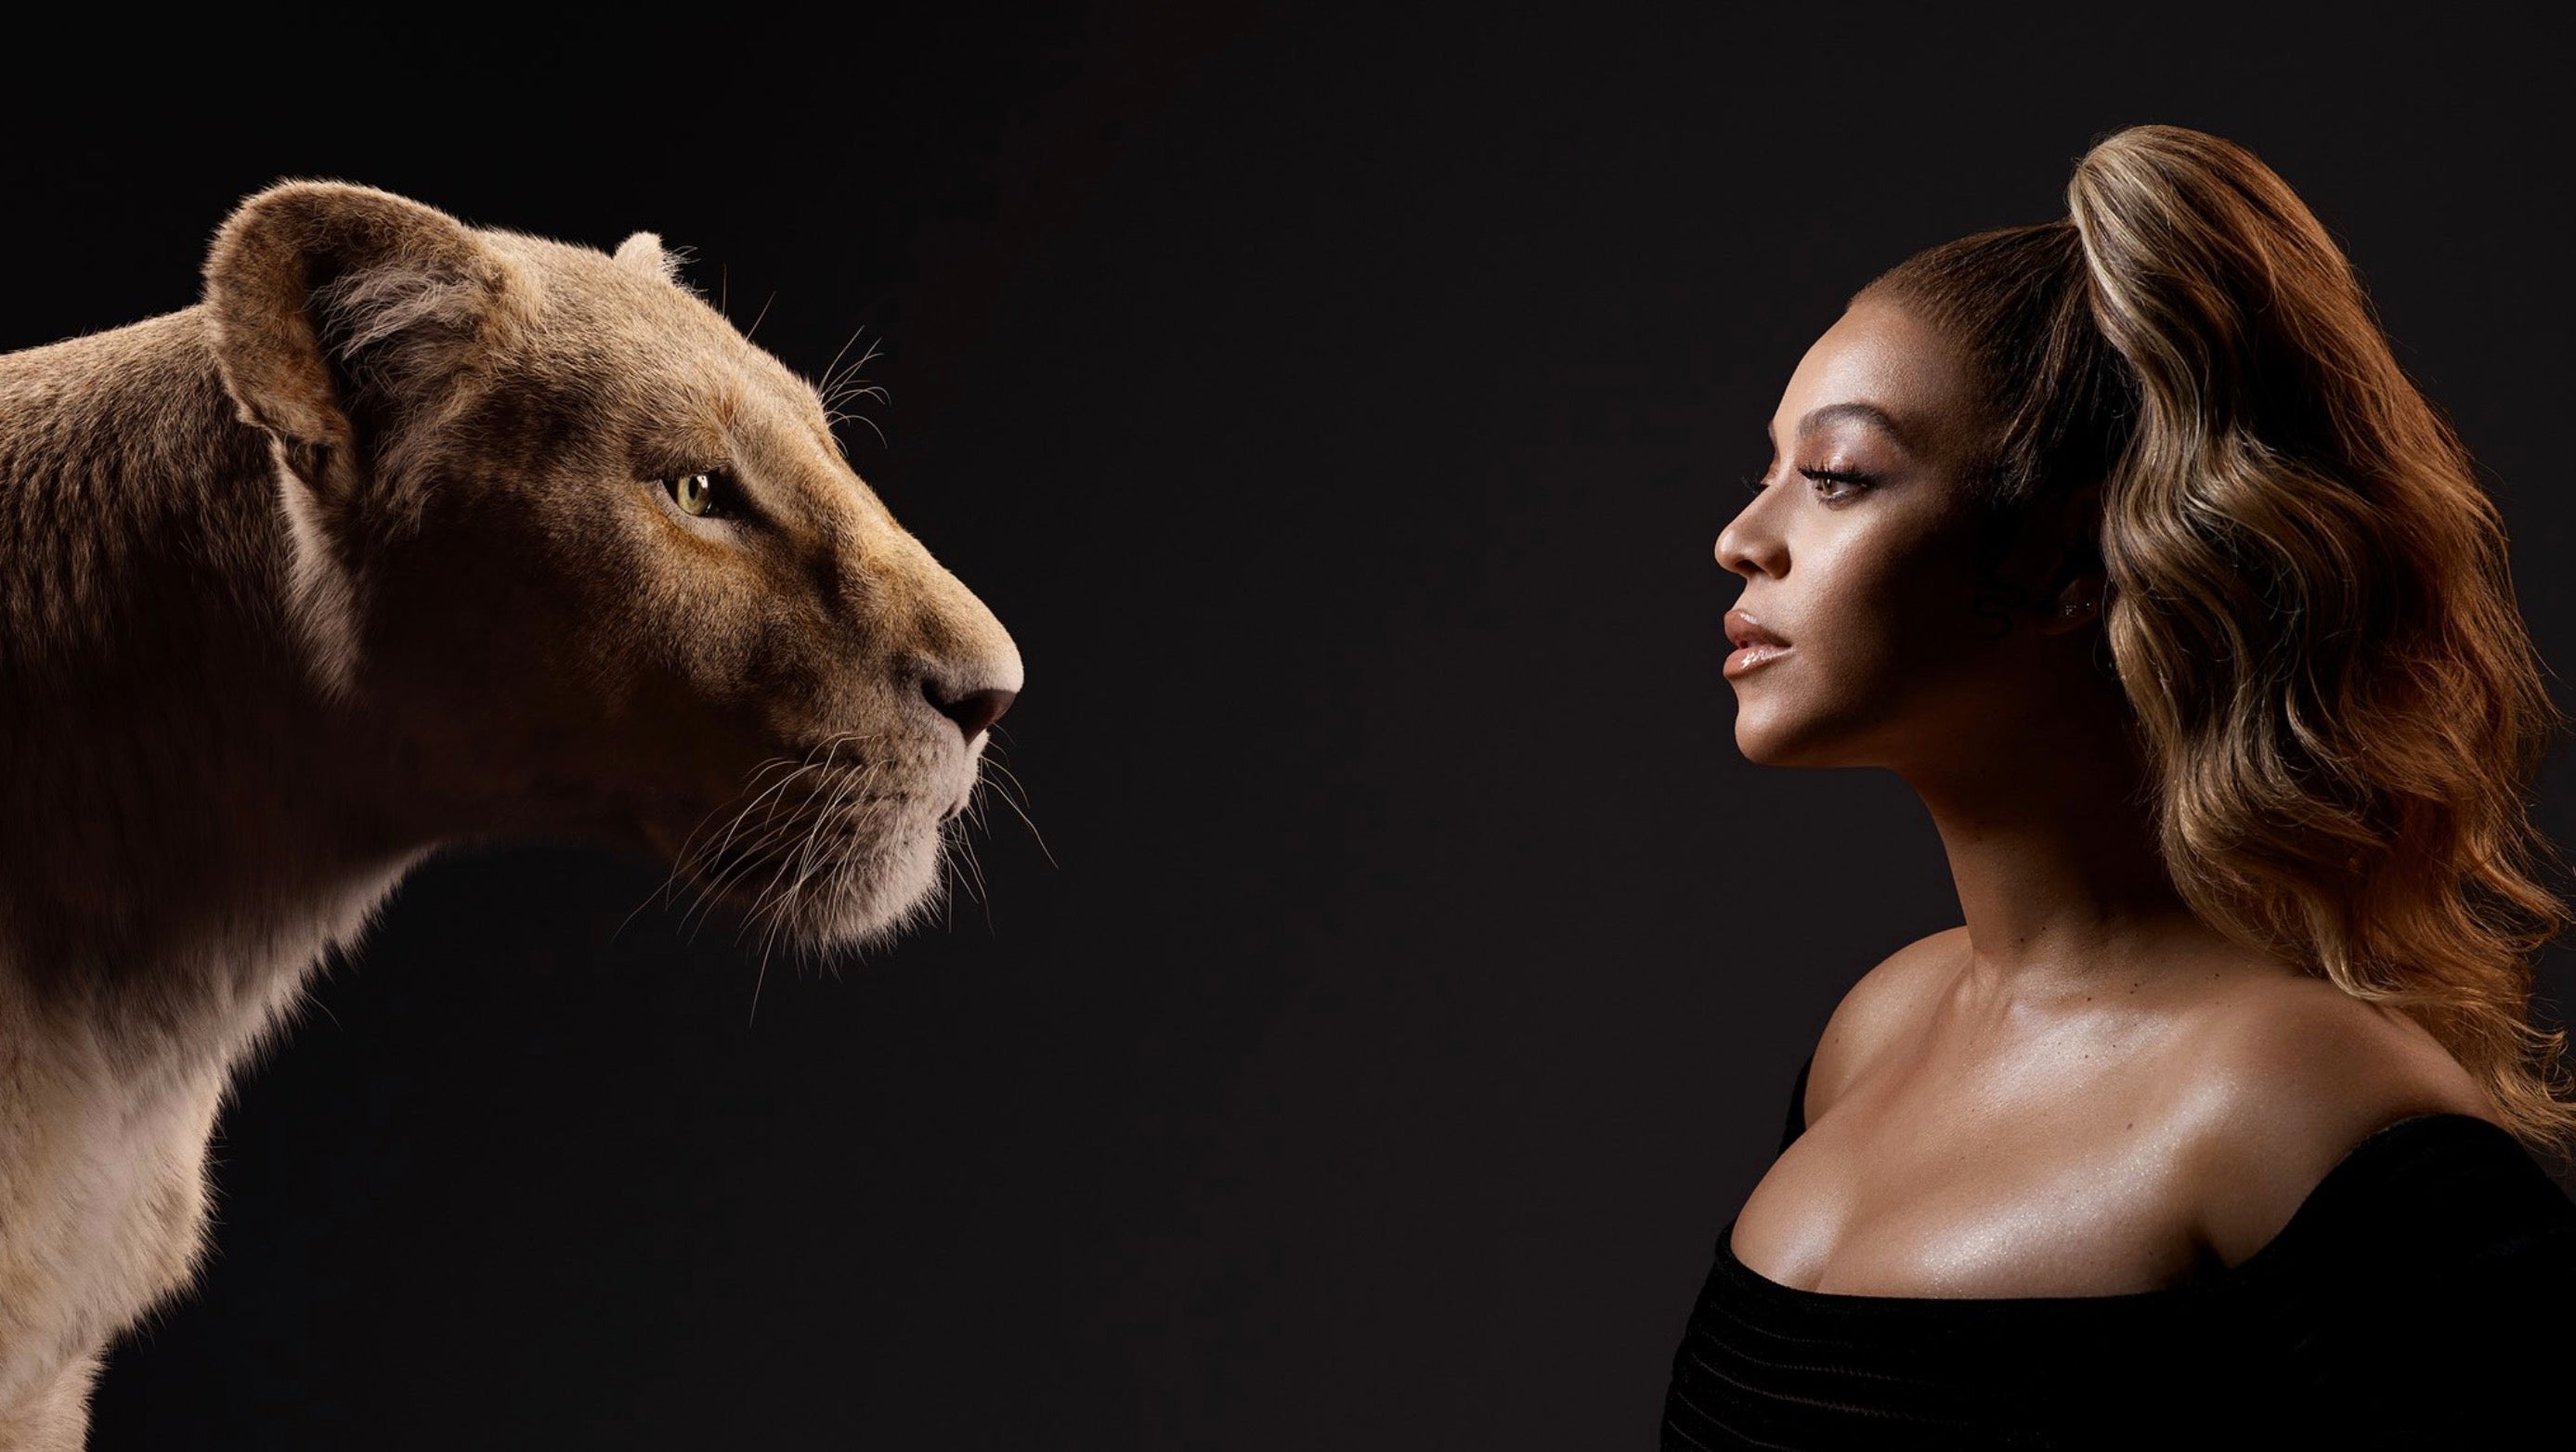 The Stars Of The Lion King Meet Their Digital Counterparts In A Stunning Series Of Photos